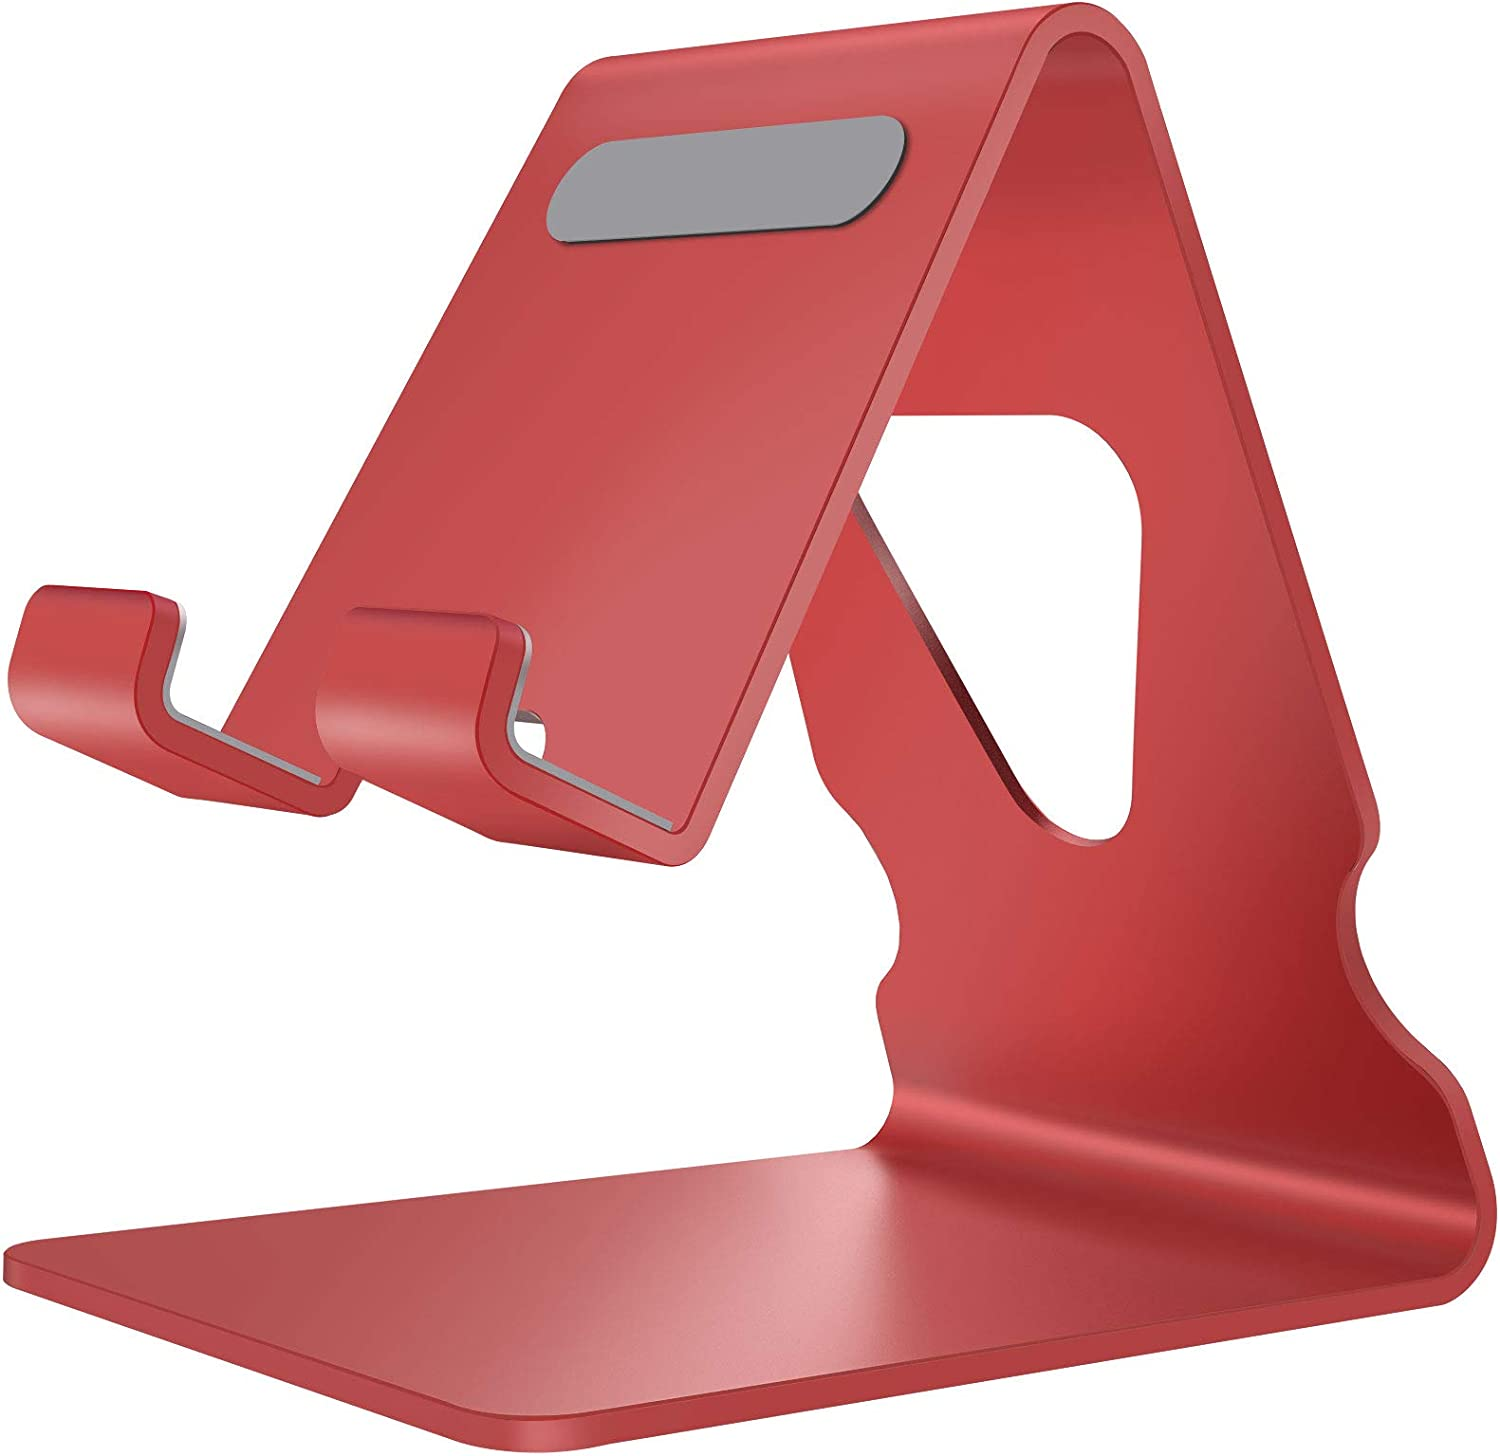 Cell Phone Stand Holder for Desk Aluminum Desktop Cellphone Cradle Dock with Cable Collective, Anti-Slip Base and Convenient Charging Port for iPhone, Bedside Table, Office-Red